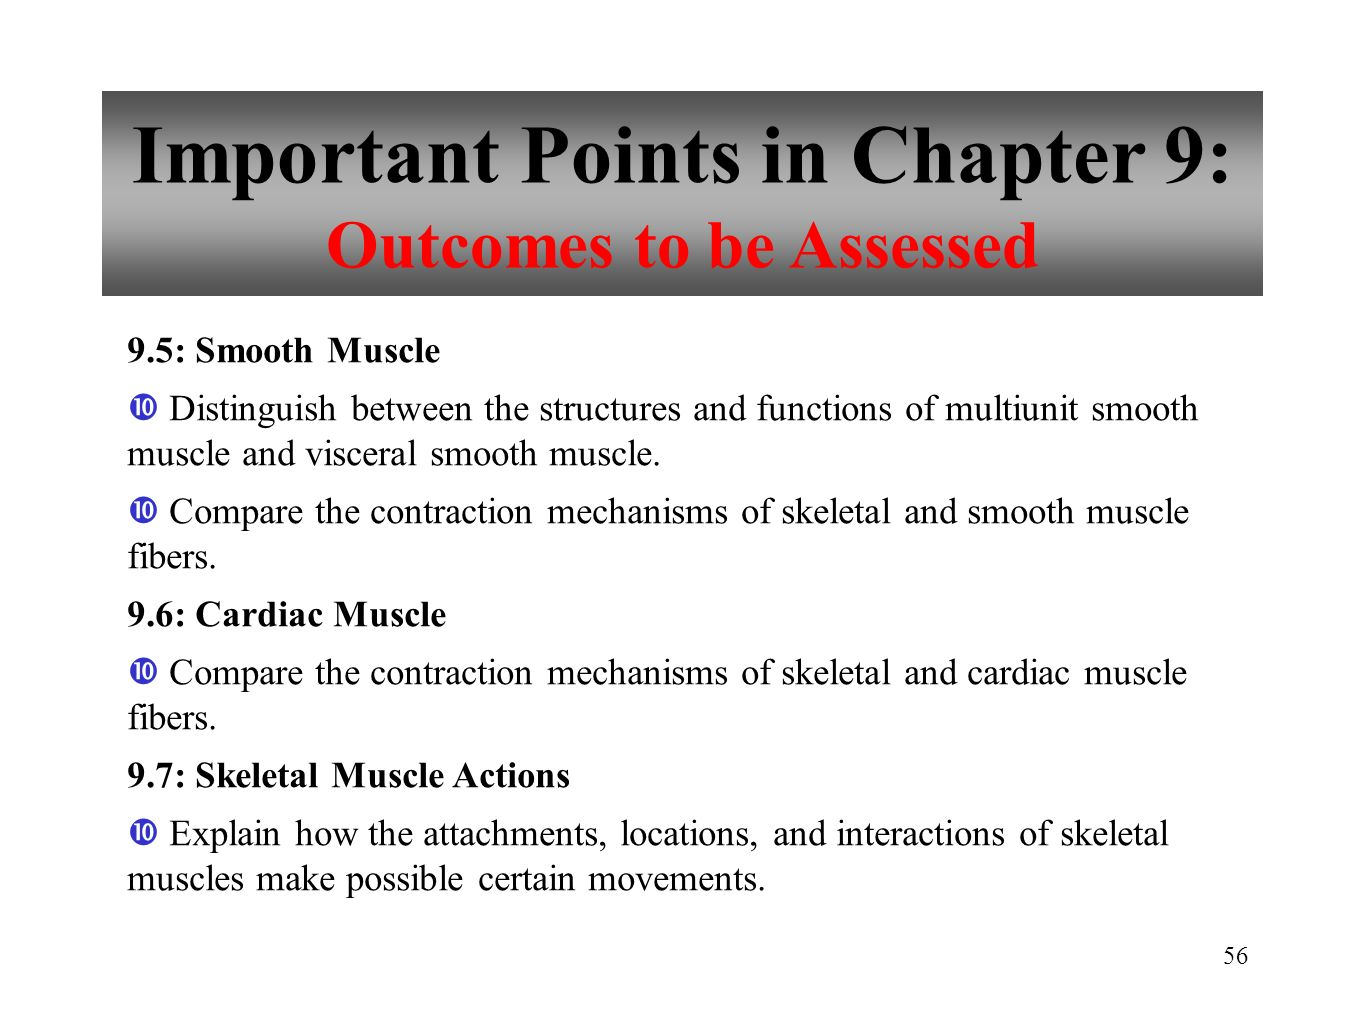 difference between cardiac muscle and skeletal muscle